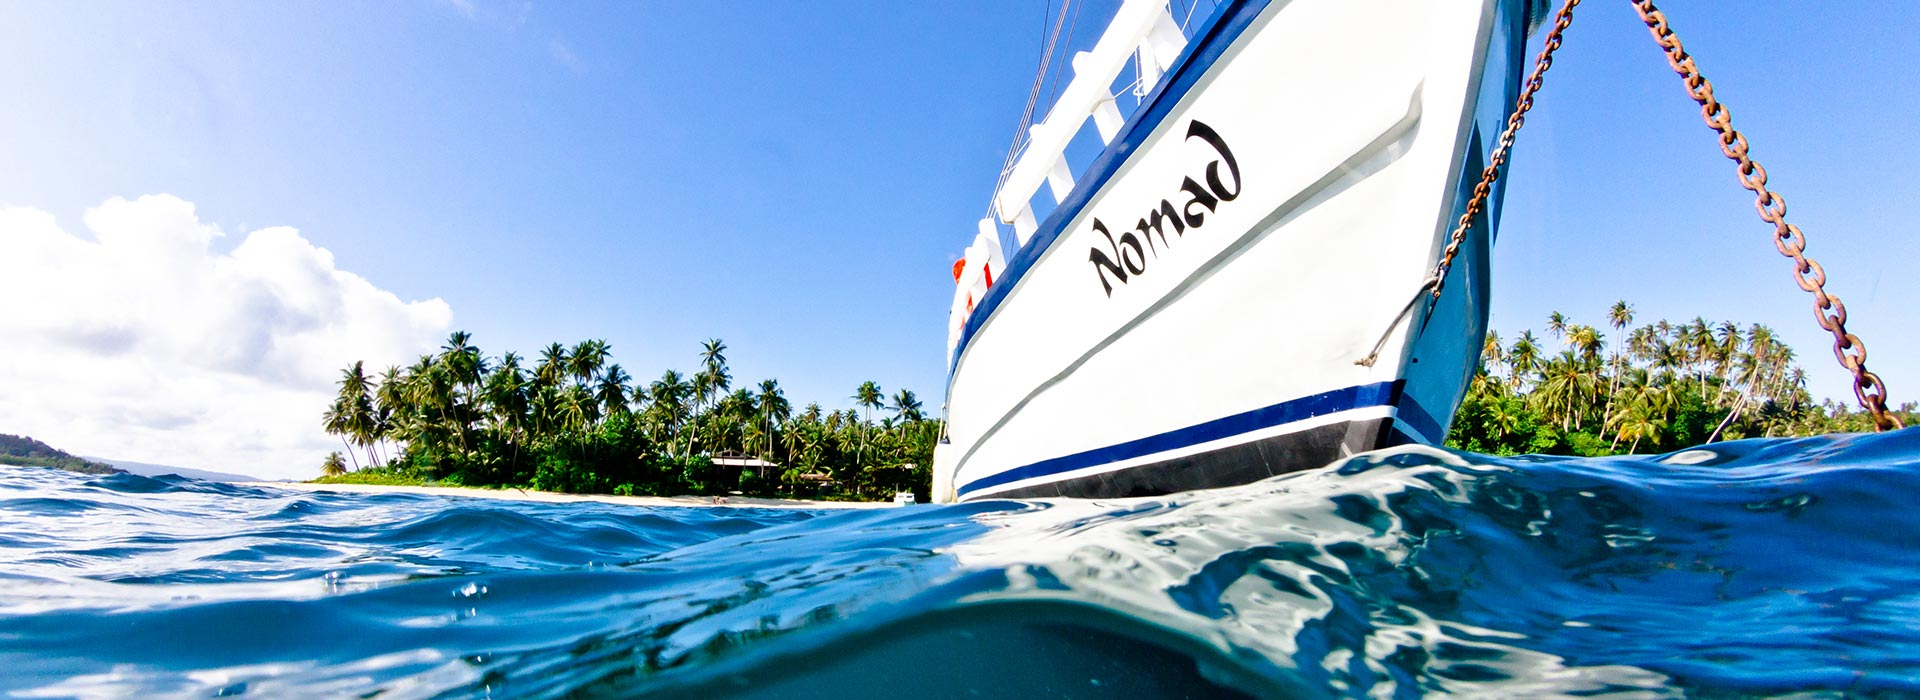 nomad-surf-charters-3